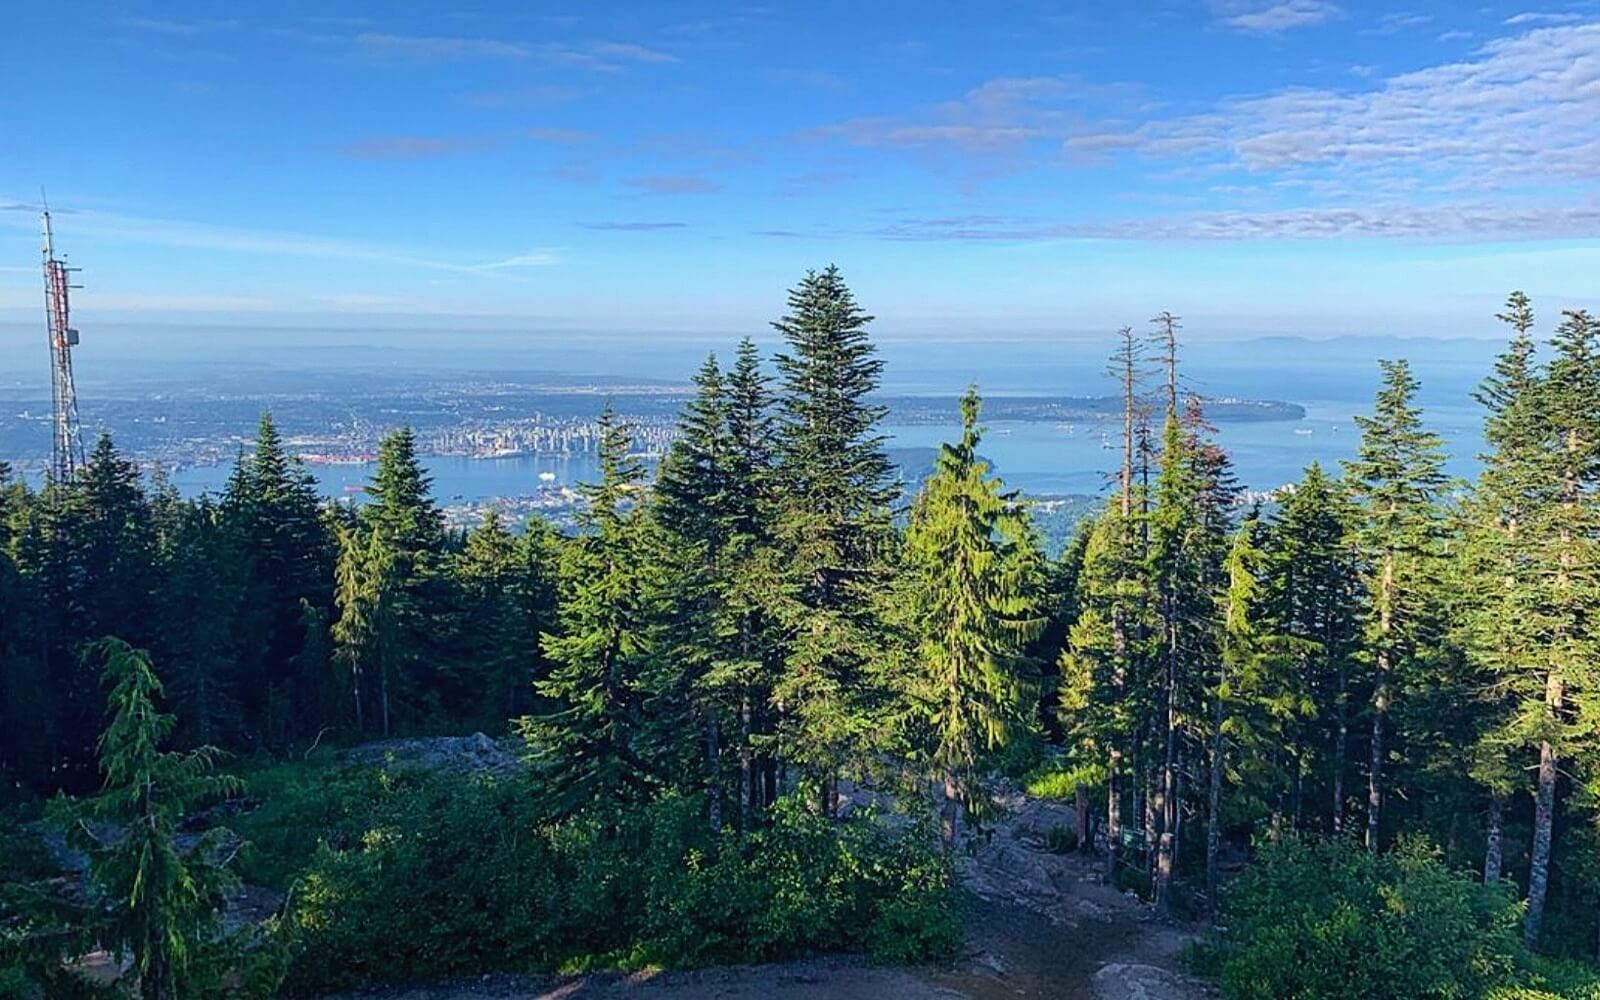 The view of Vancouver from Grouse Mountain